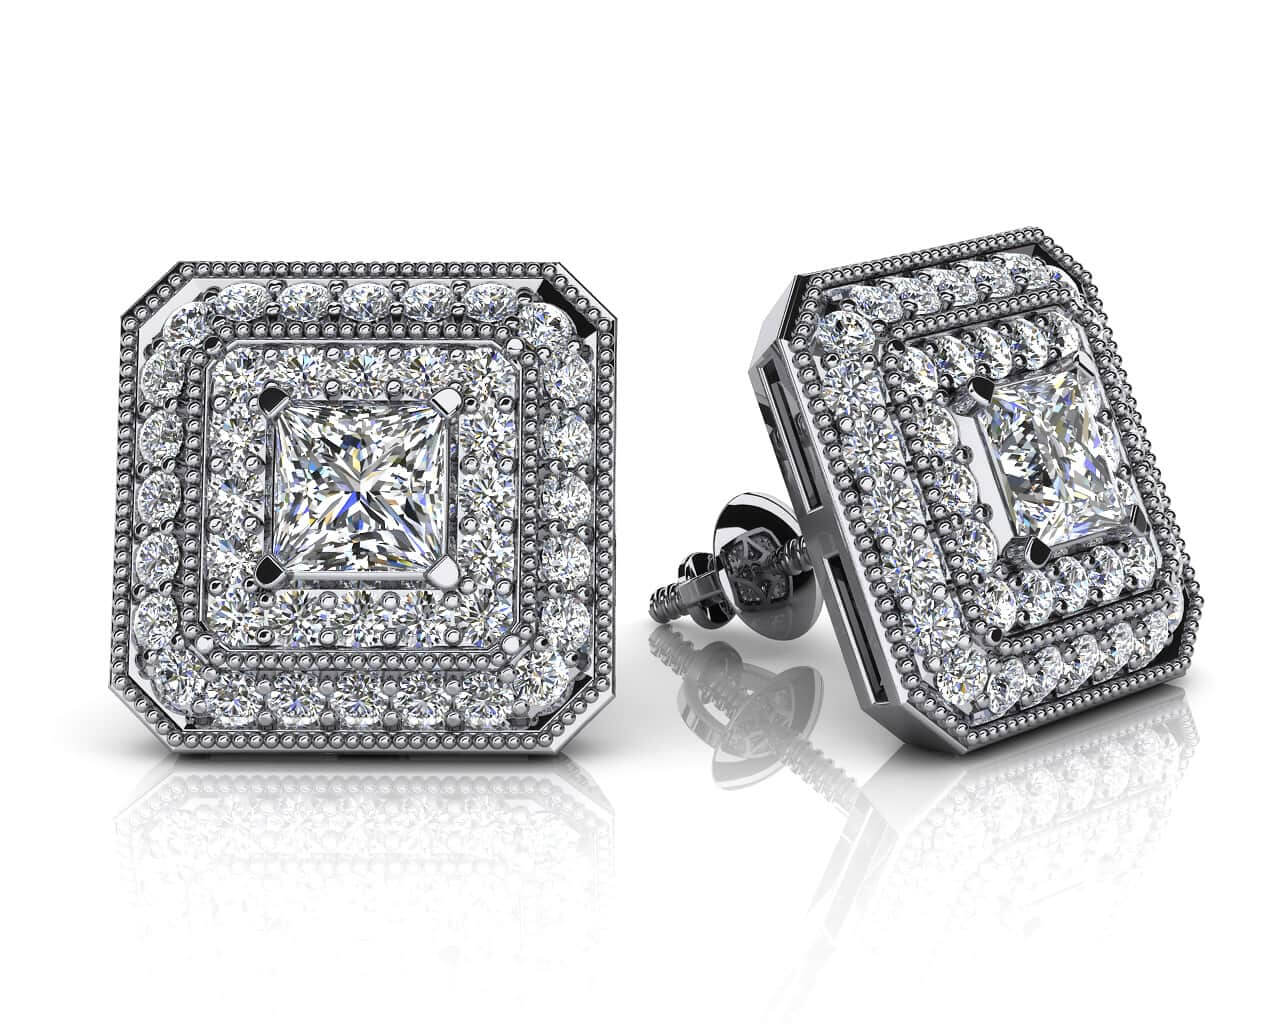 Square Shaped Pricess Cut And Round Diamond Earrings 0 71 Carat Total Weight